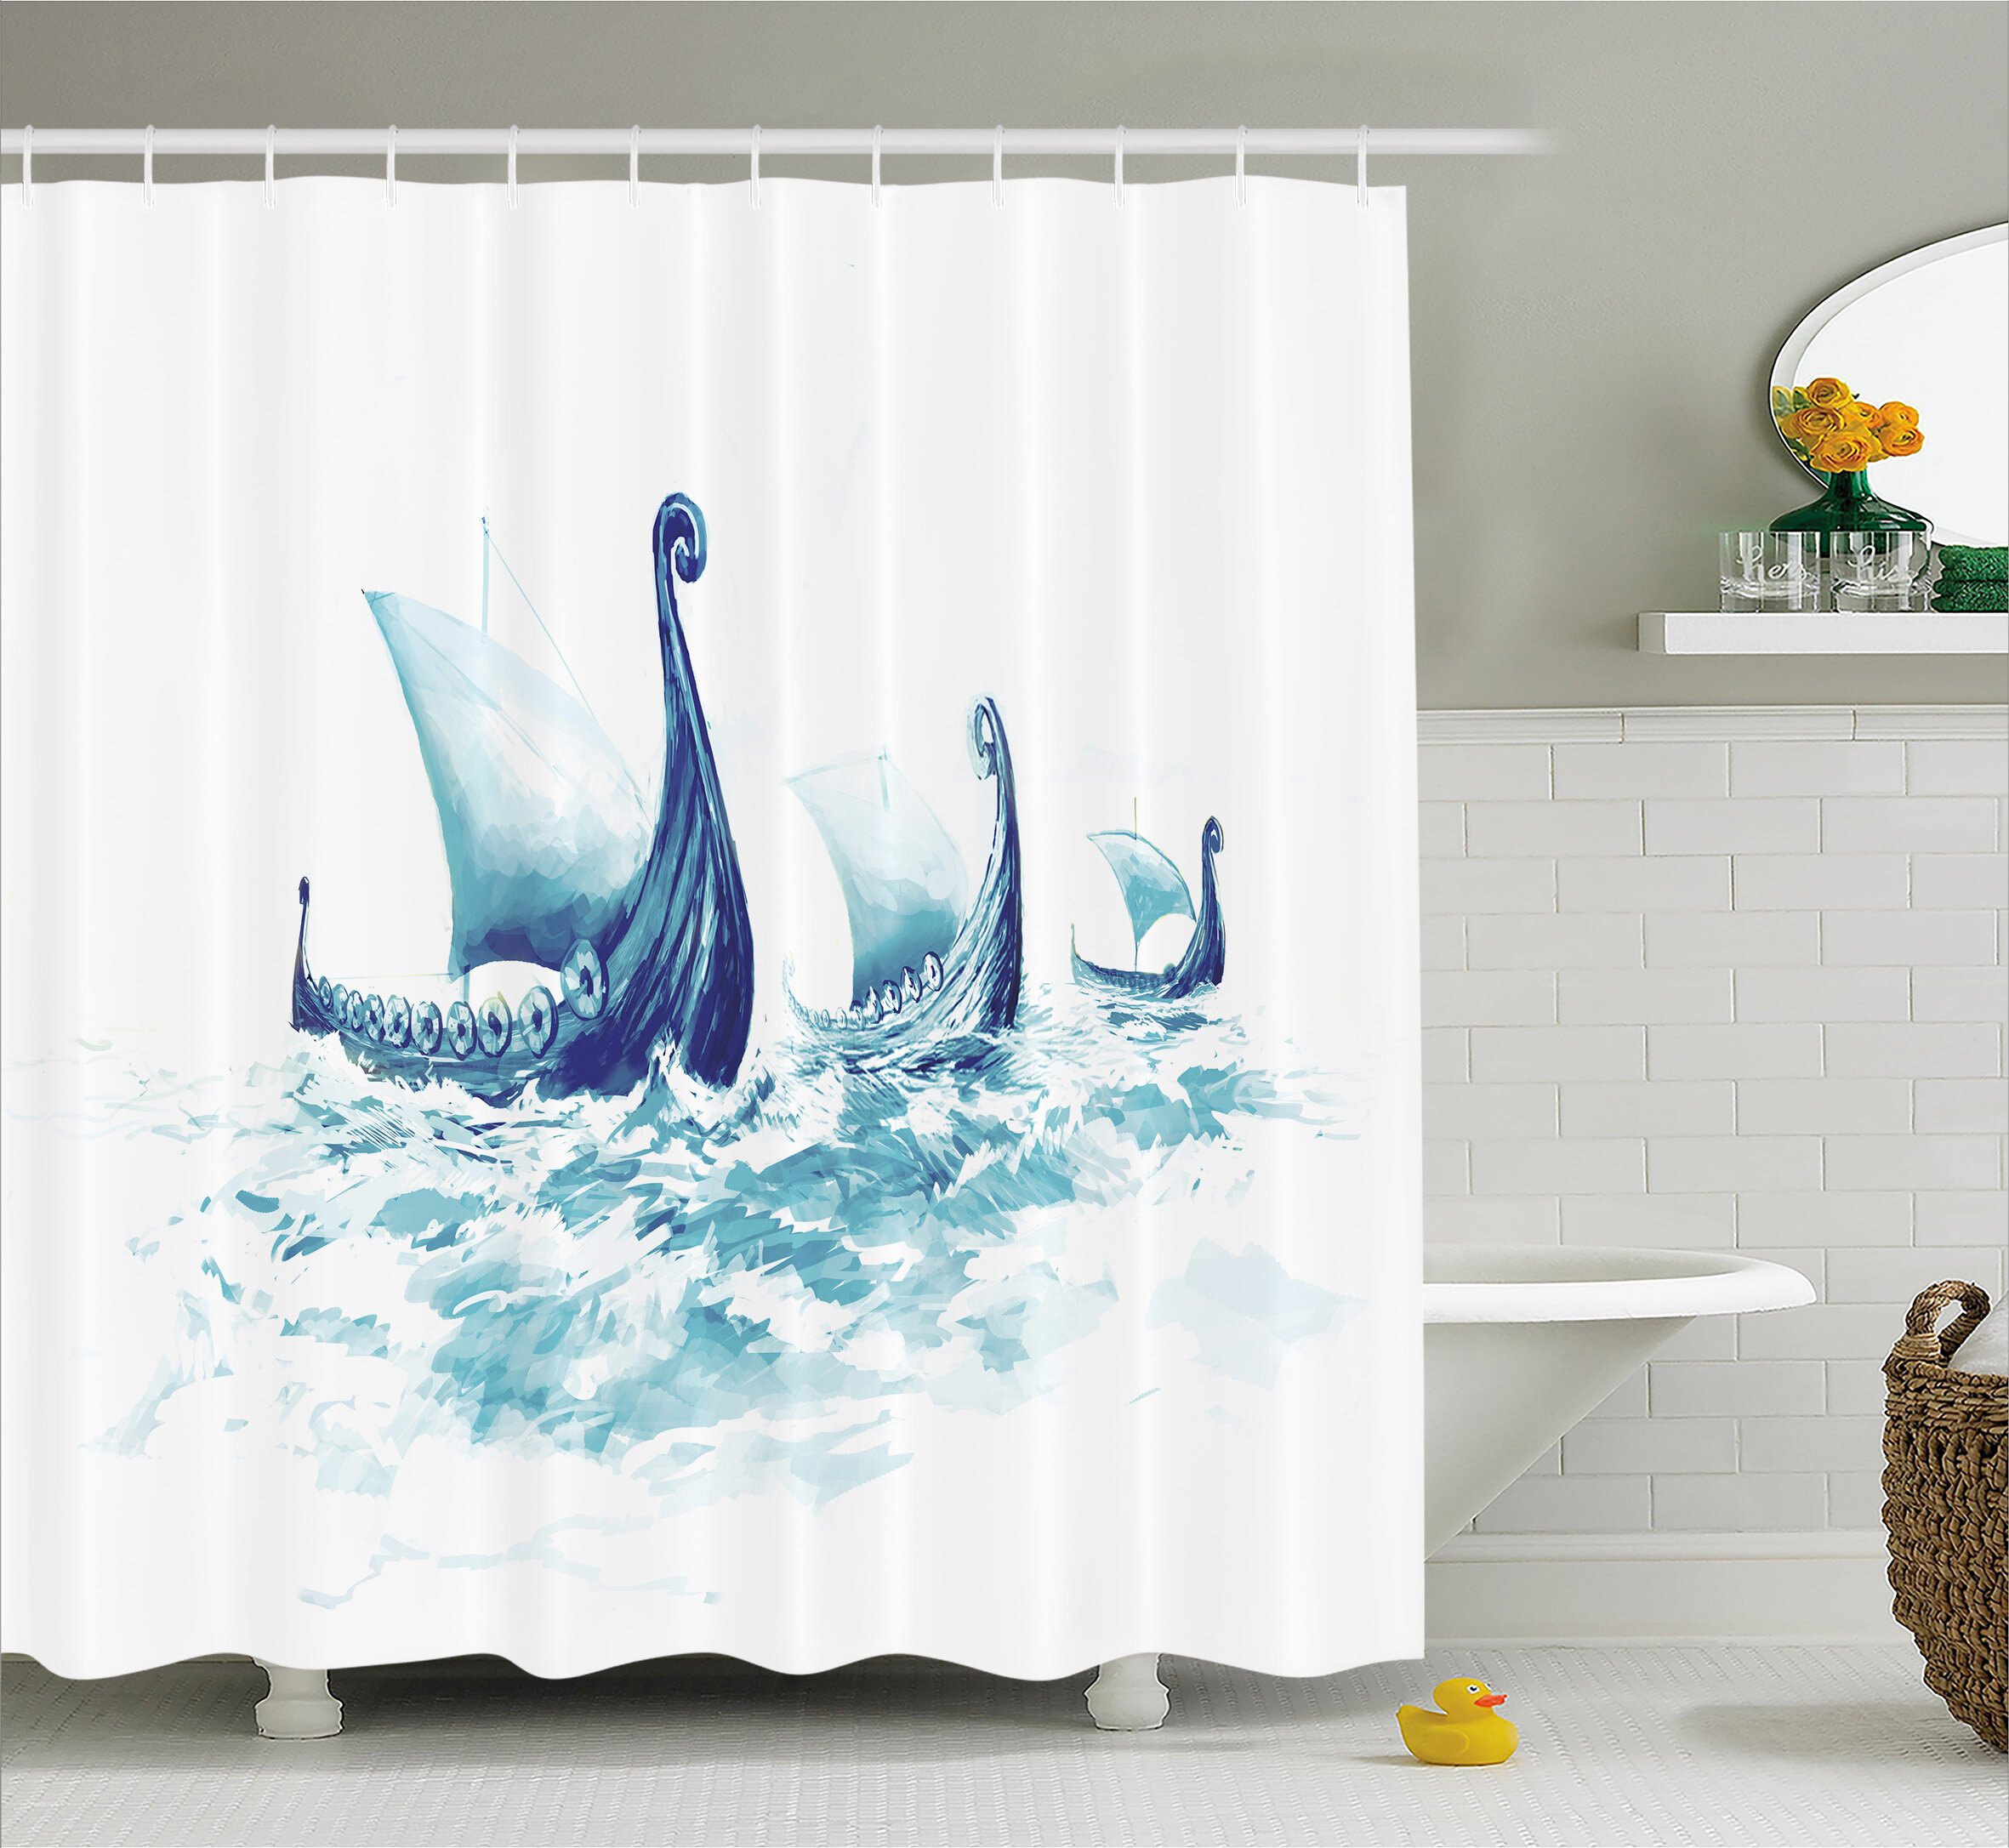 East Urban Home Viking Decor Ship Nordic Sea Shower Curtain